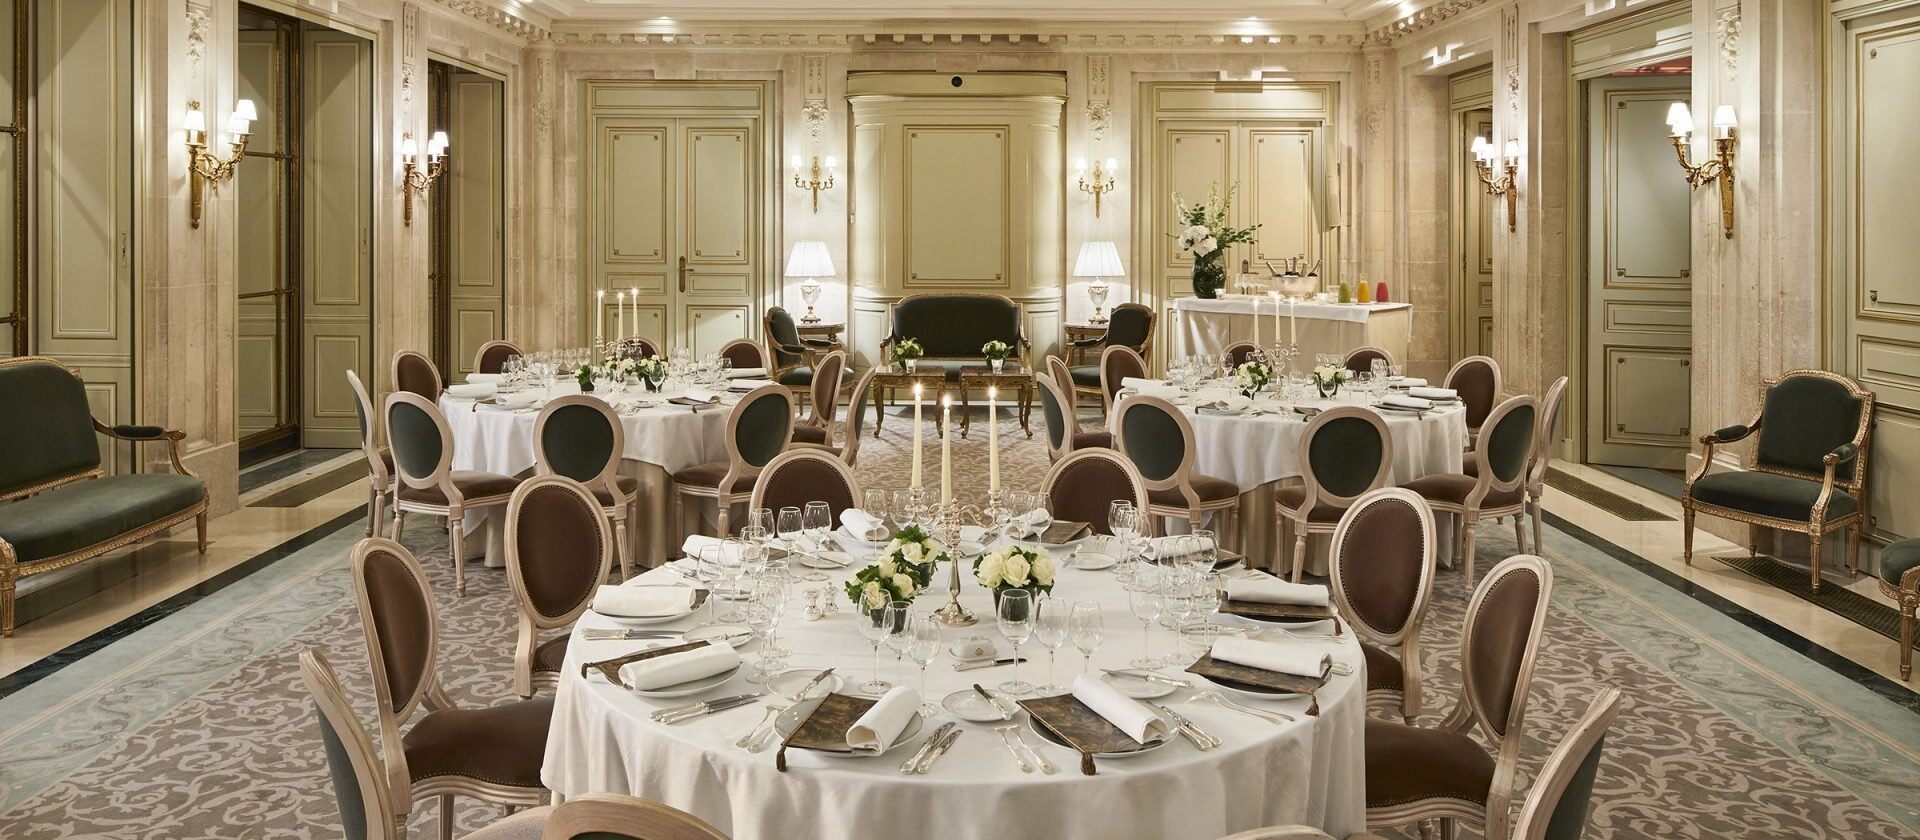 Salon Tuilerie - Paris - Le Meurice | Dorchester Collection